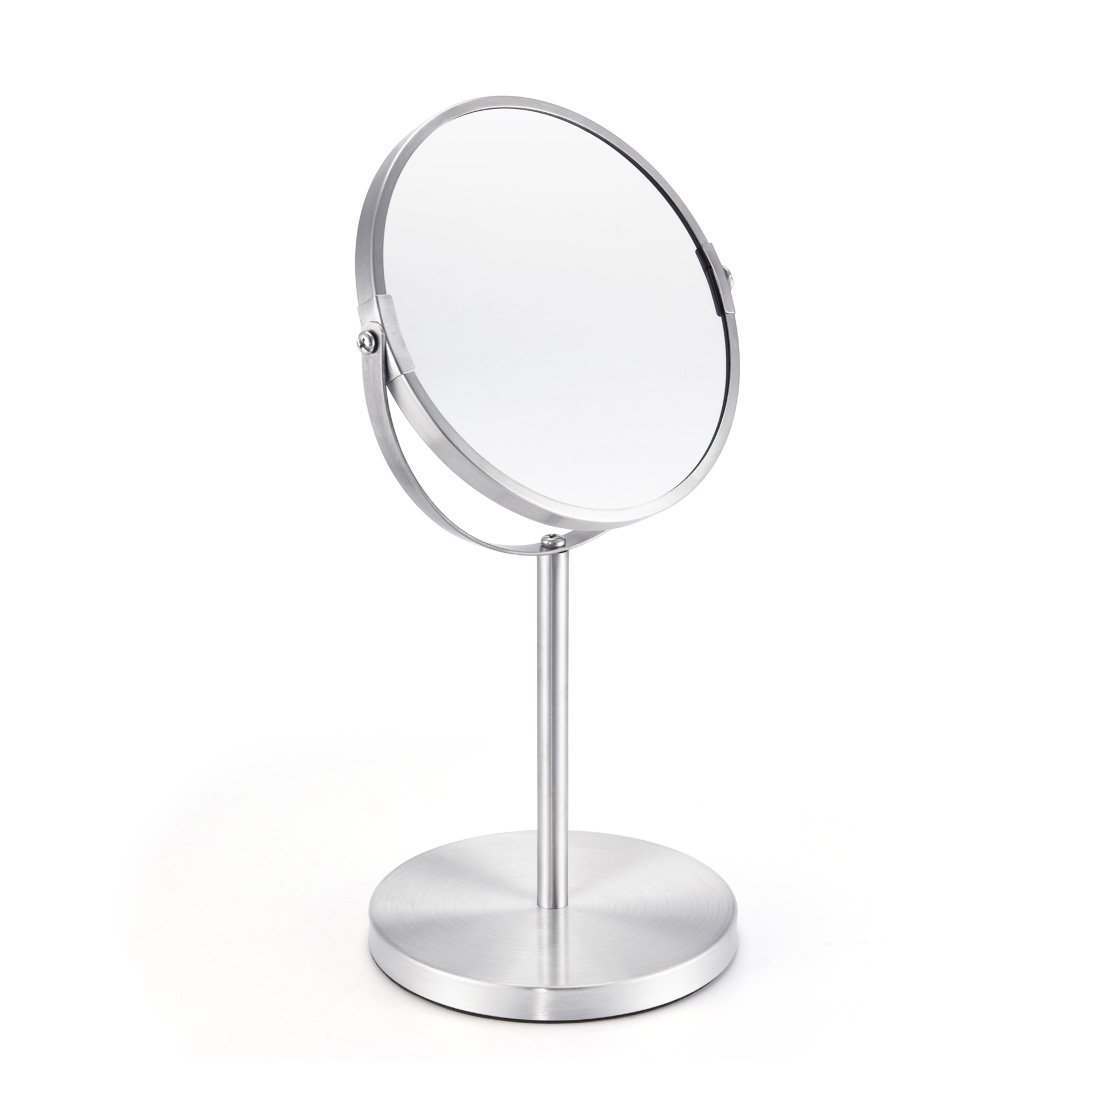 FIRMLOC Makeup Vanity Mirror 3X Magnifying, 6-inch Double-side Mirror, Tabletop Swivel Mirror Chrome Finish, 13-inch Height by FIRMLOC